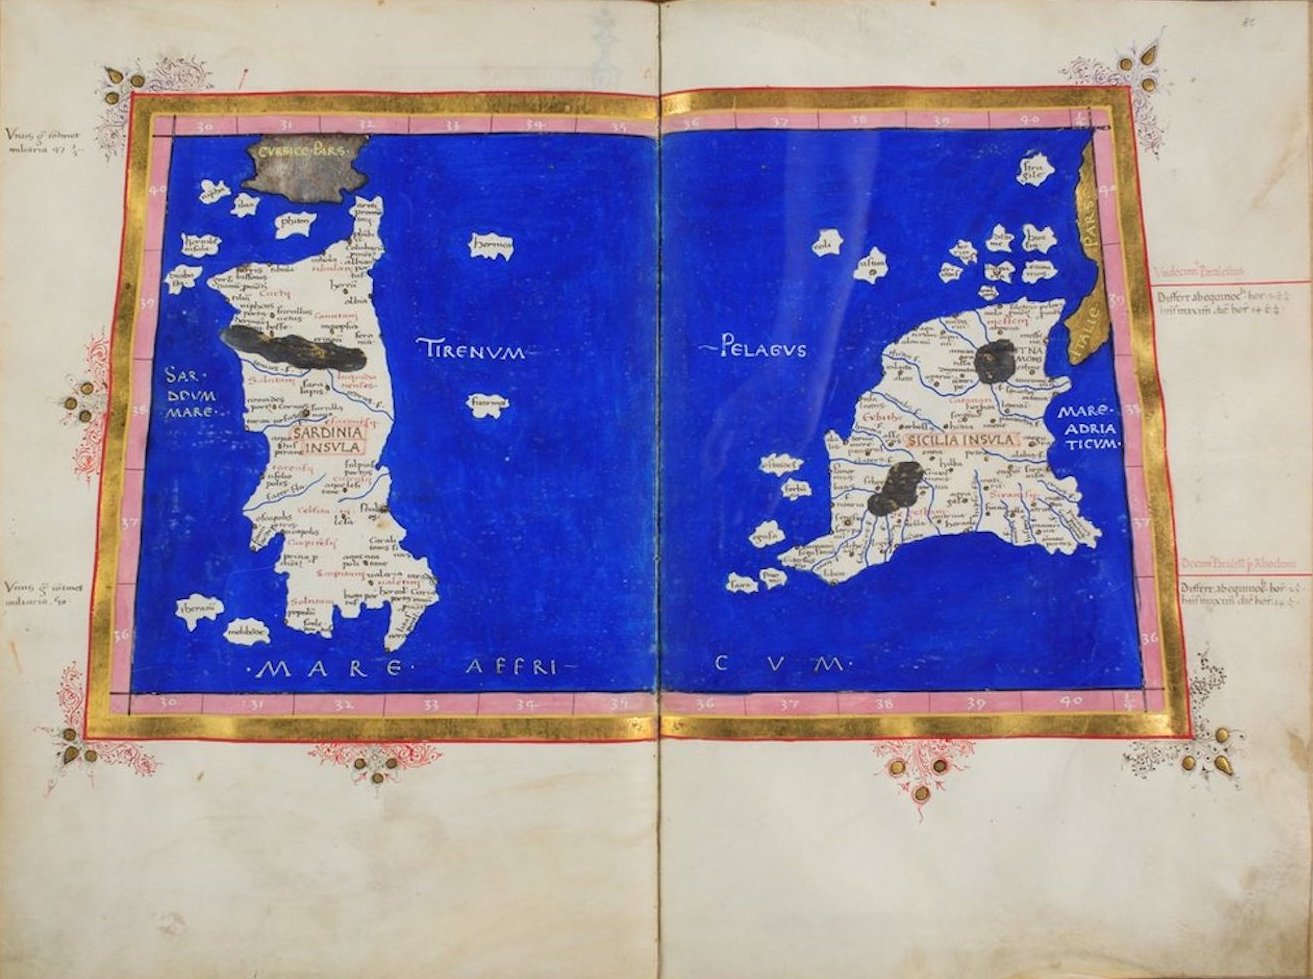 Ptolemy's Map of Europe - VII